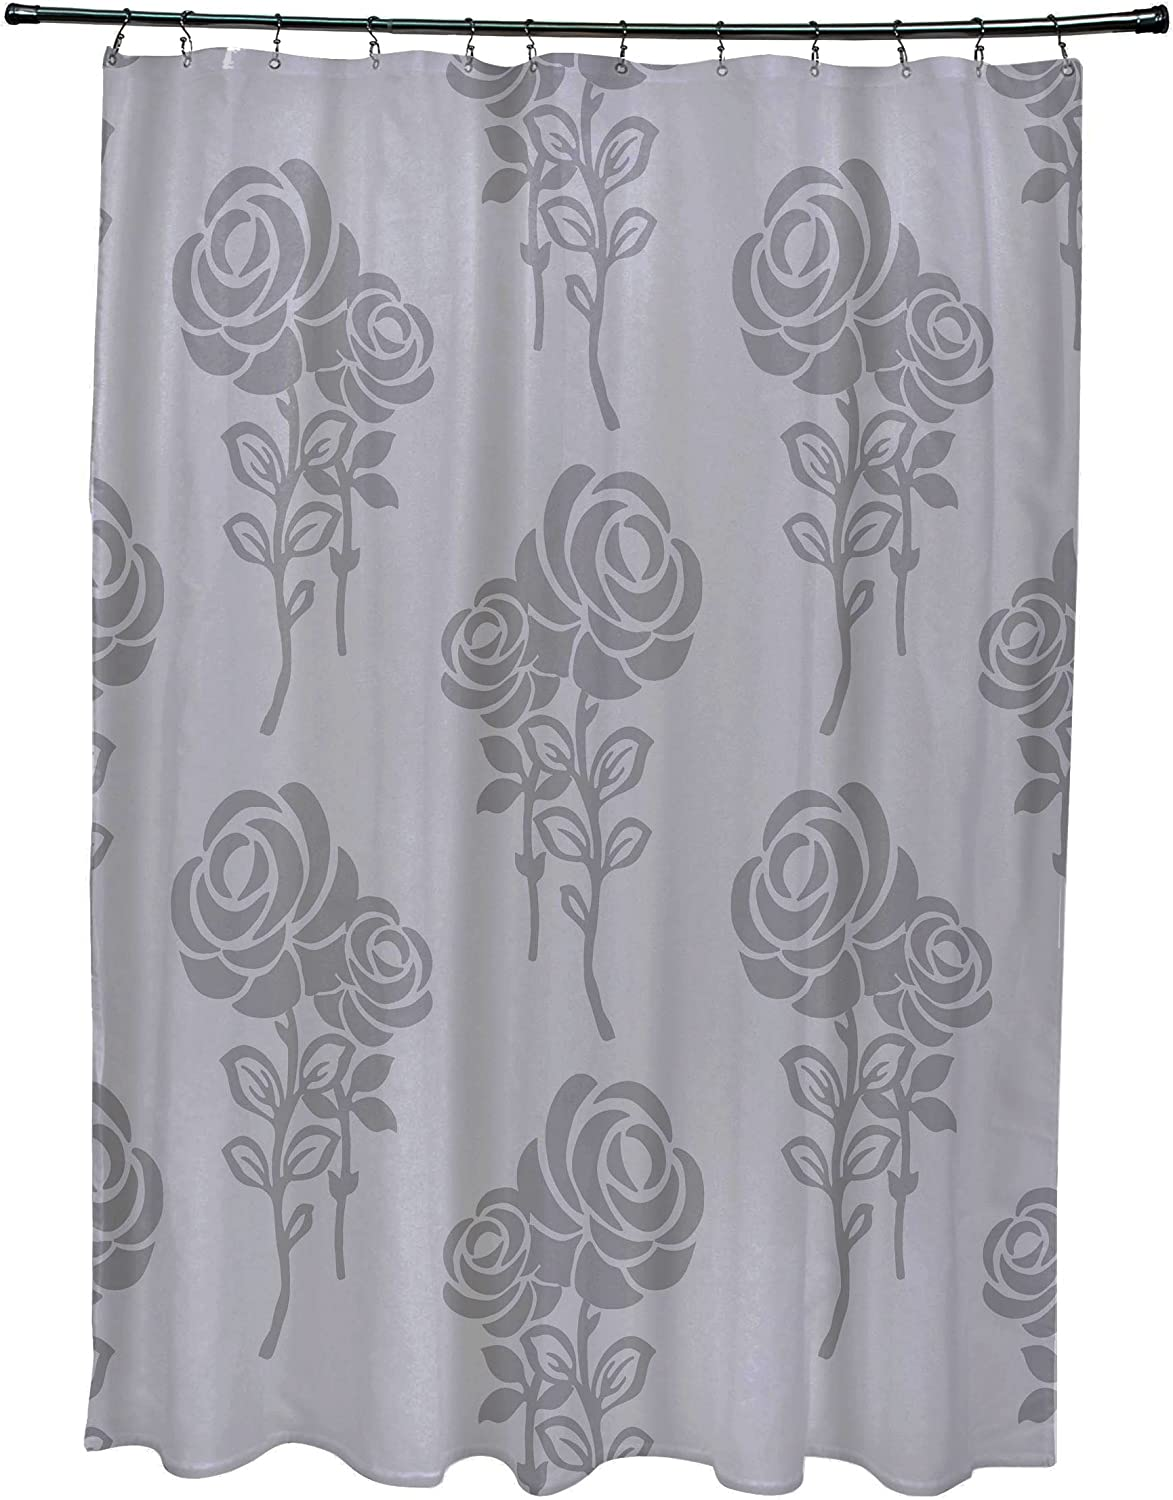 E By Design Scfn500gy1gy2 Carmen Floral Print Shower Curtain Gray Home Kitchen